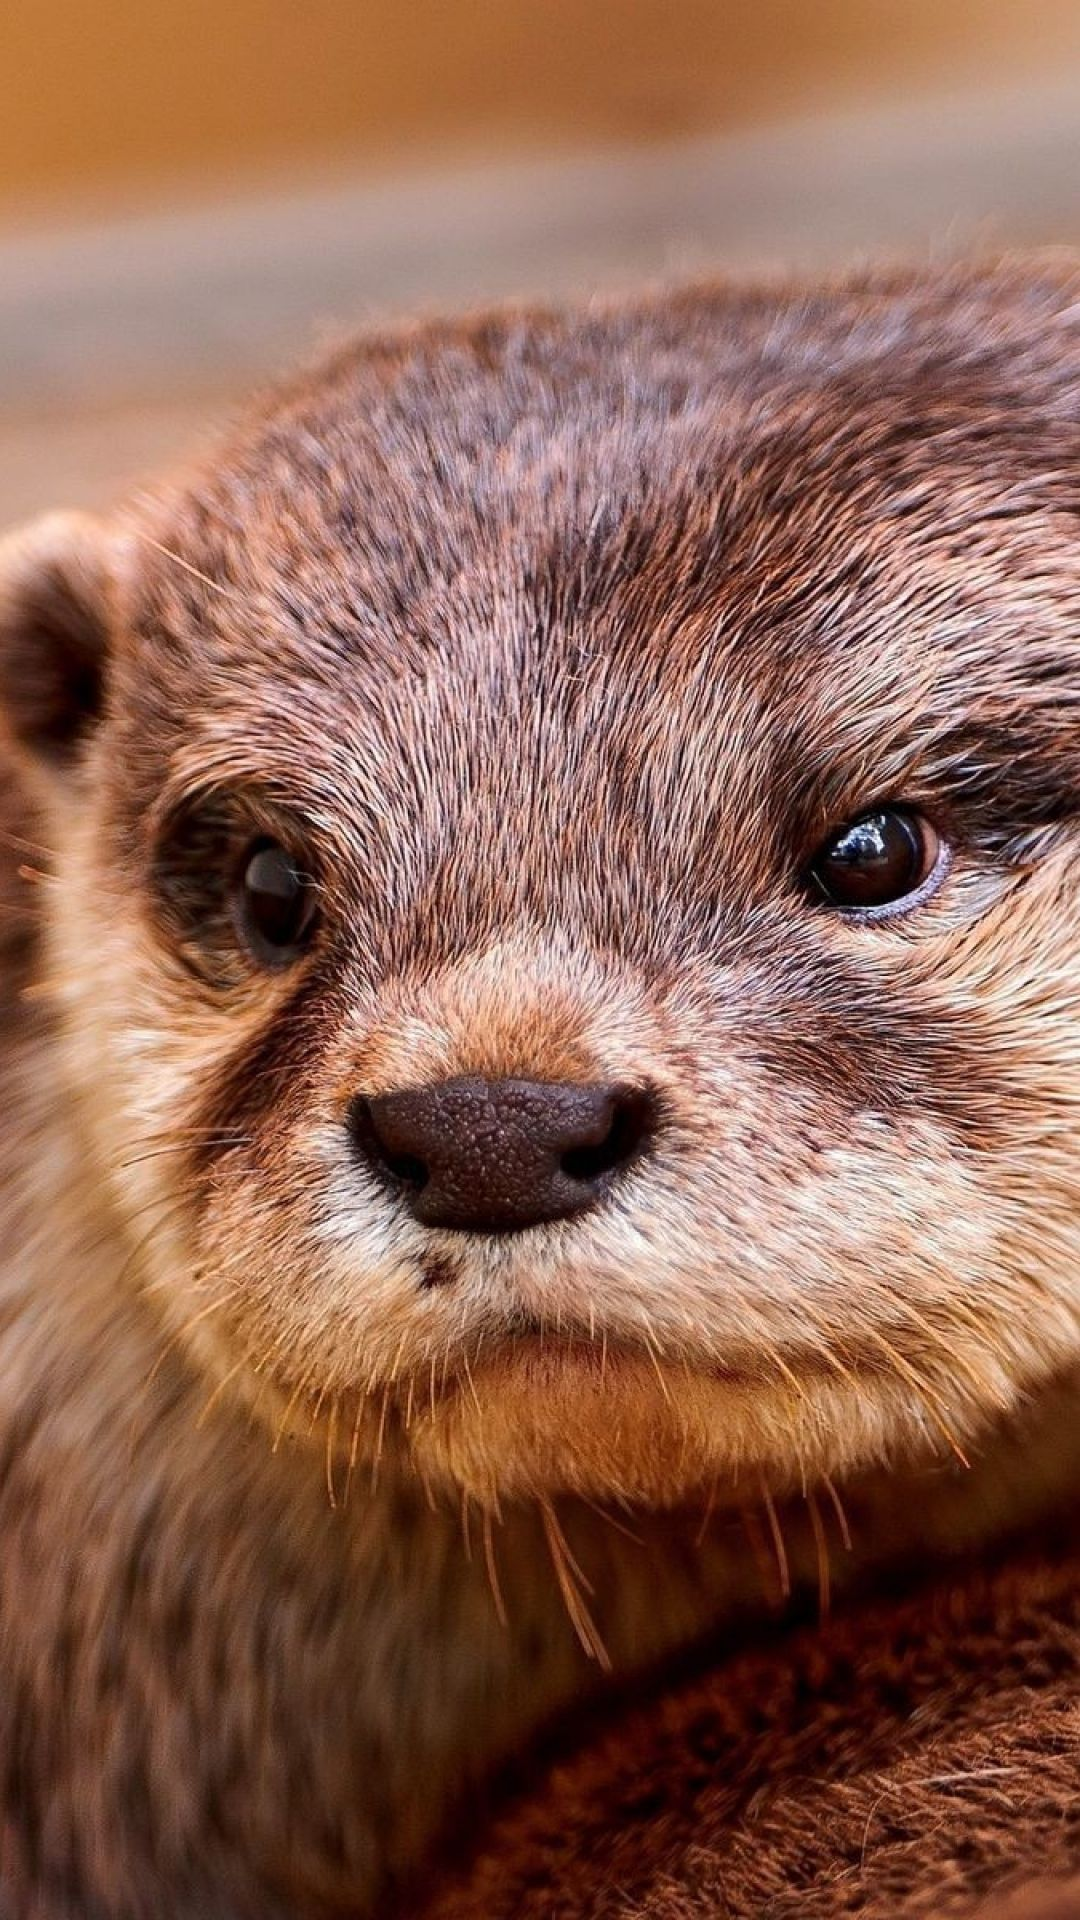 Otter Face Eyes Animal Otters Cute Animals Cute Animals